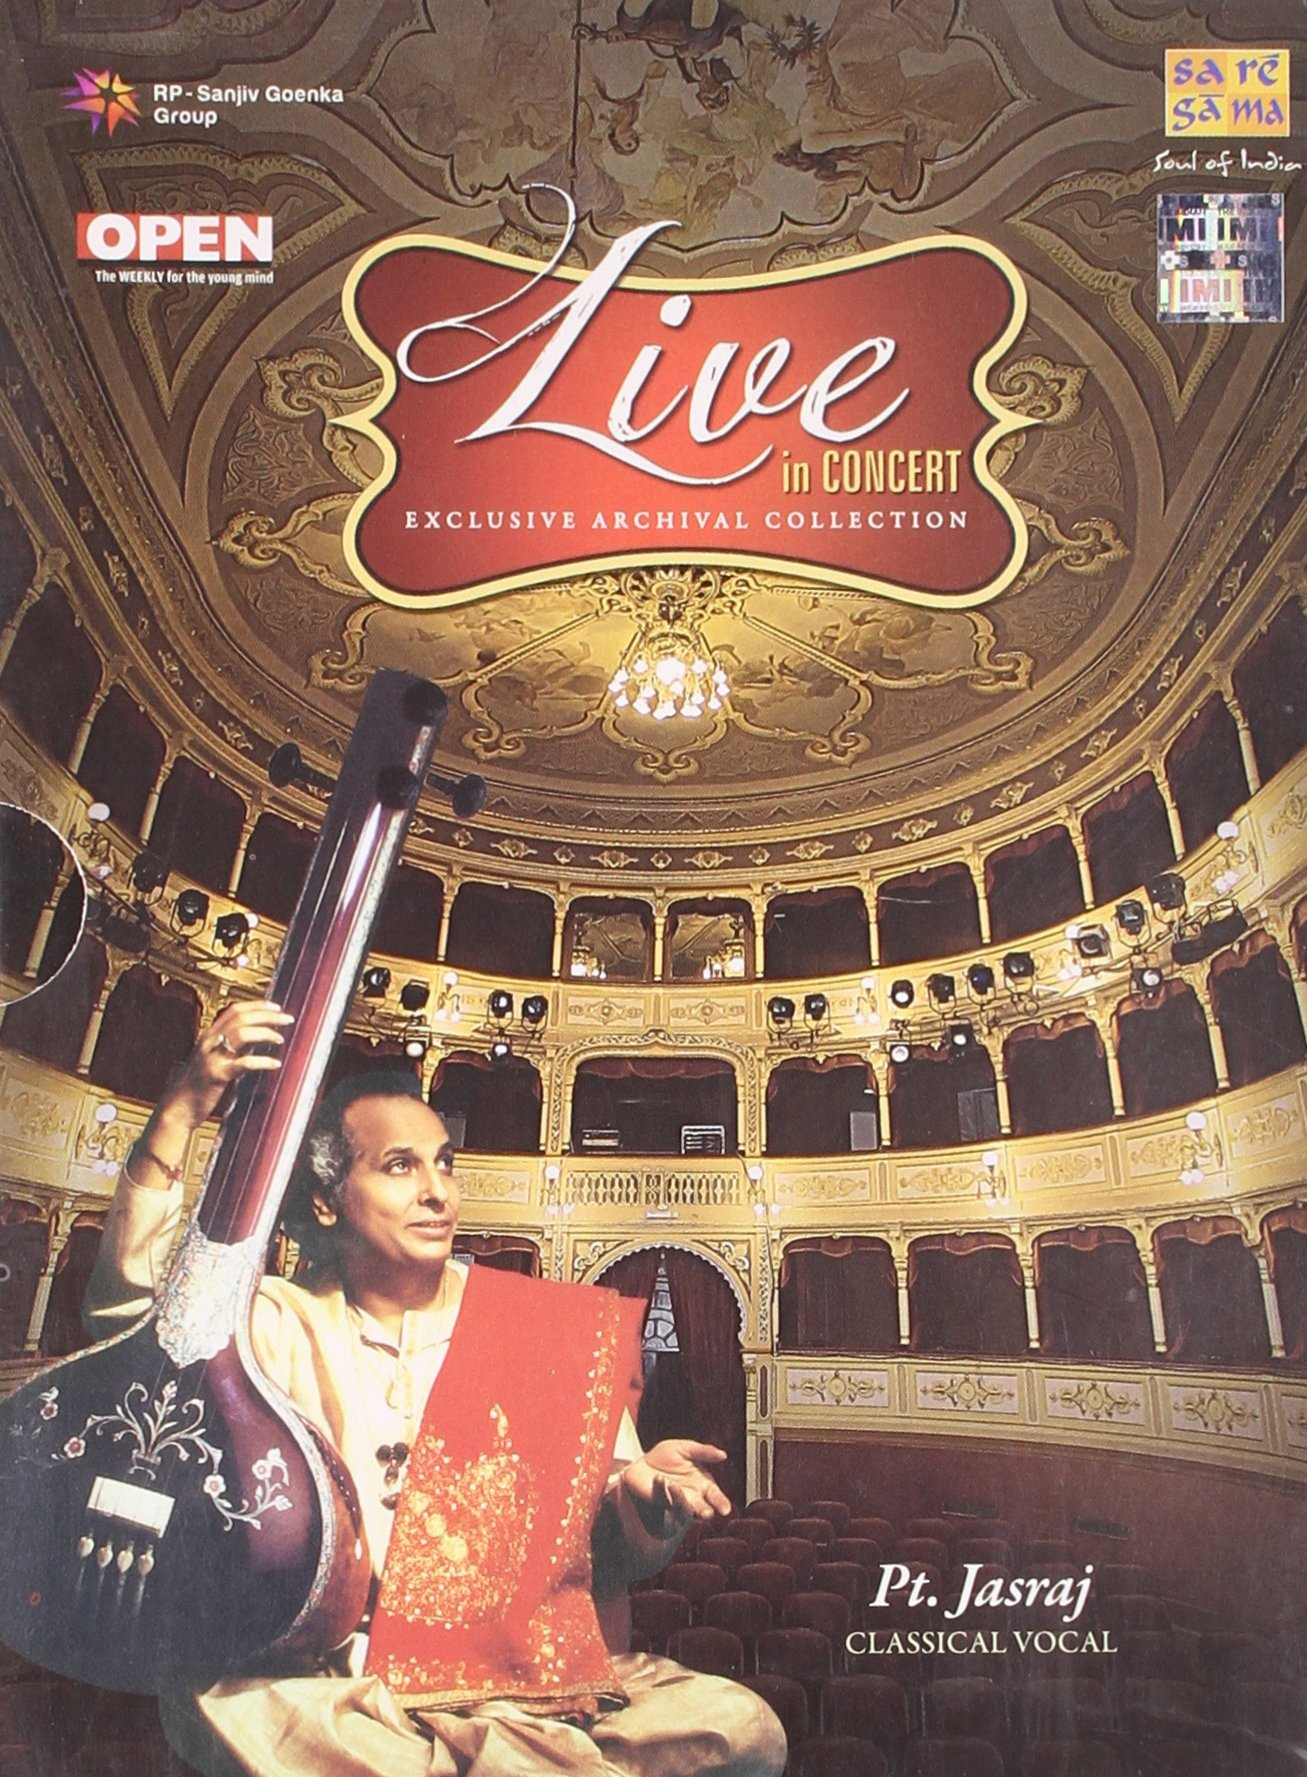 Live In Concert - Pt. Jasraj (Exclusive Archival Collection / Hindustani Classical Vocal / 2-CD Set)